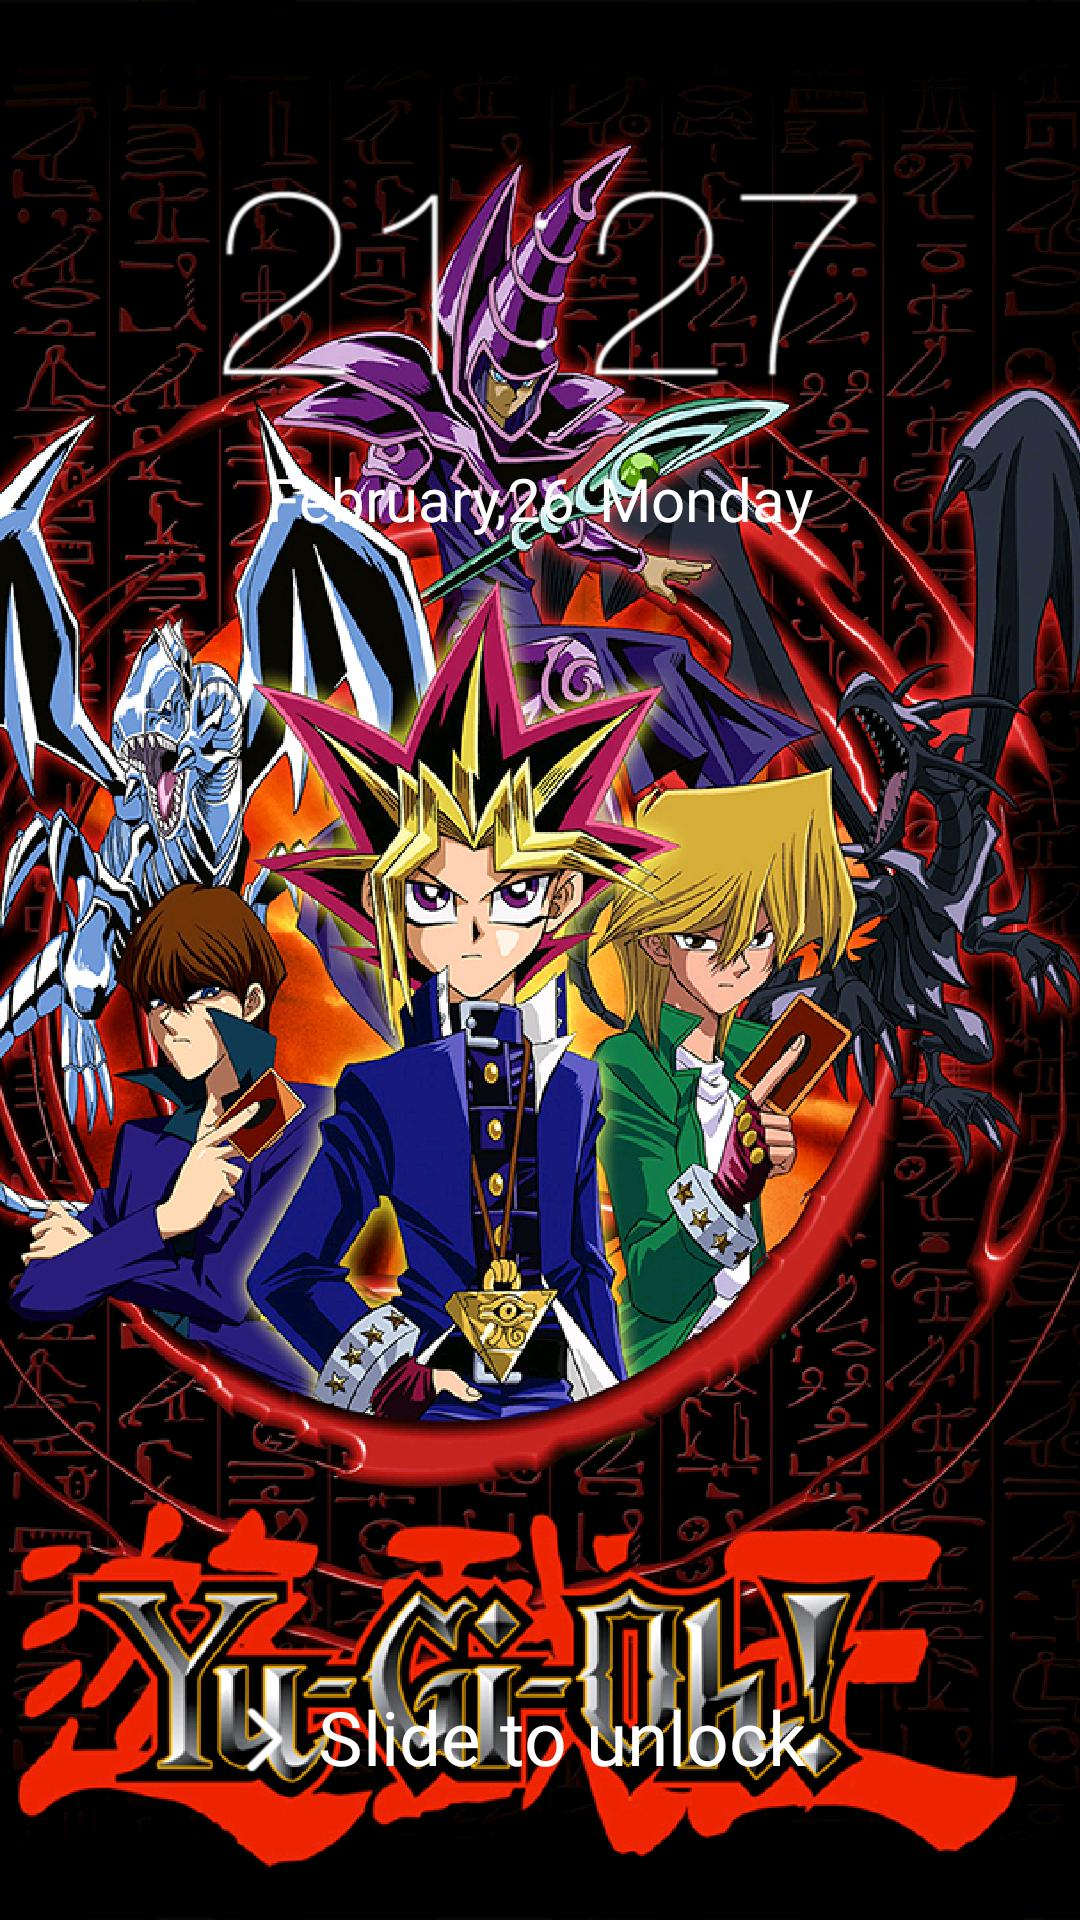 Yu-Gi-Oh Lock Screen HD Wallpapers for Android - APK Download